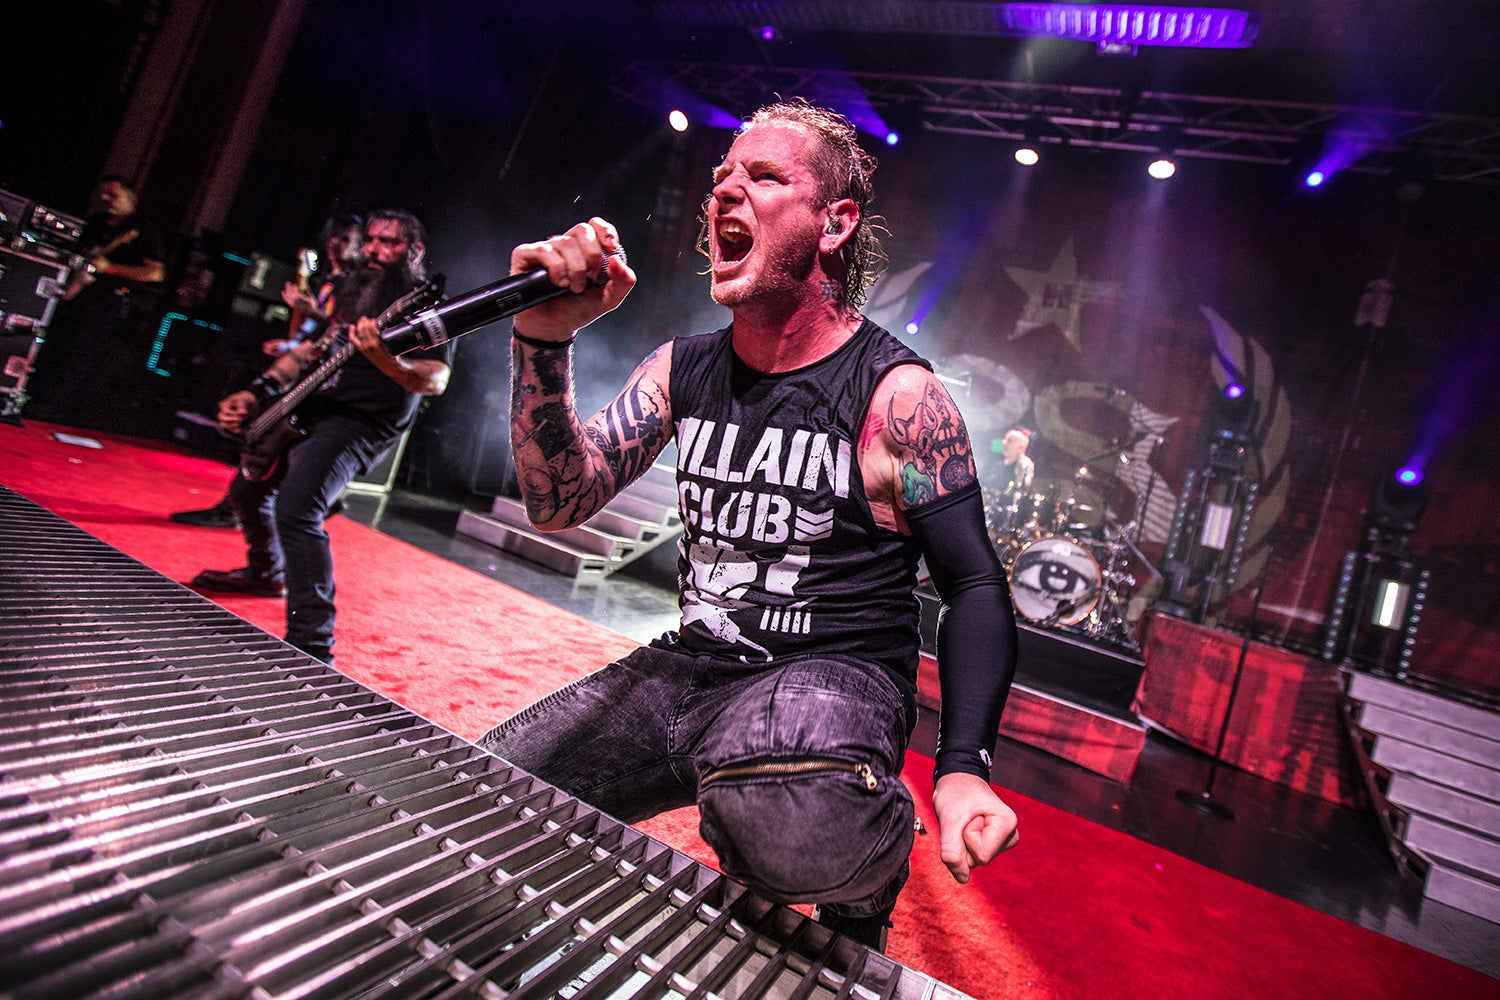 Take A Look At These Awesome Photos From Stone Sour's European Run